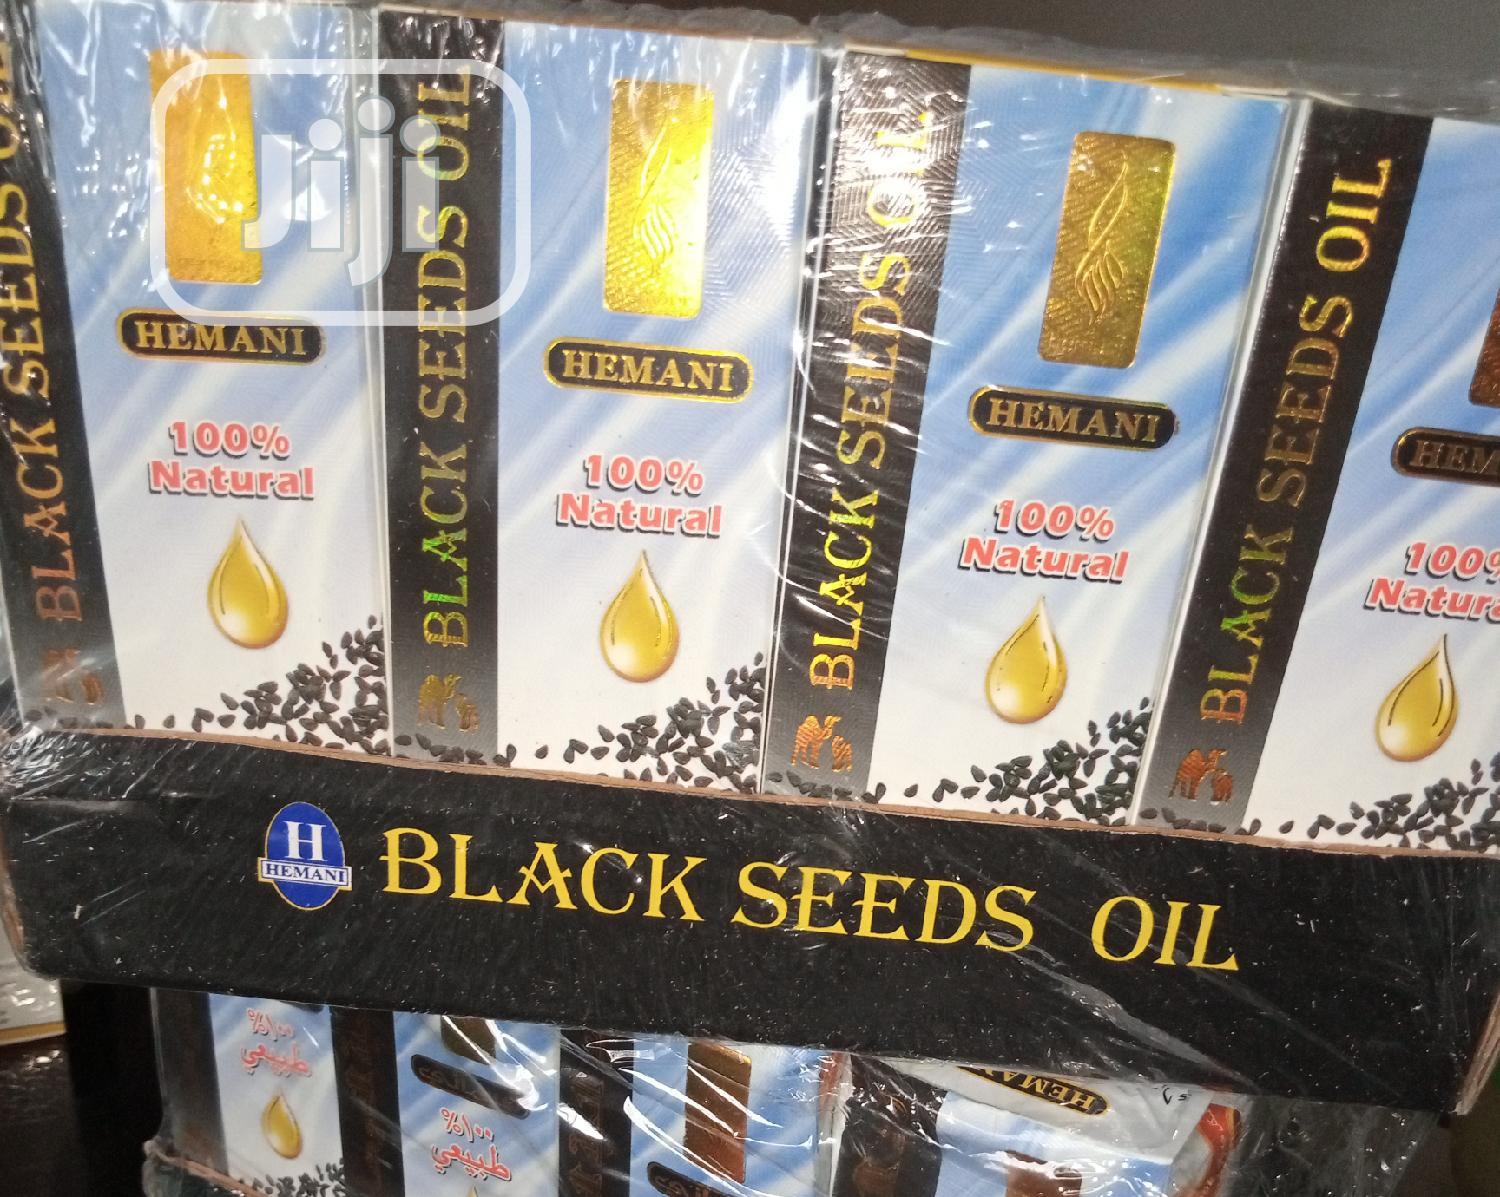 HEMANI BLACK SEED OIL (Cure For All , Diseases And Sickness)